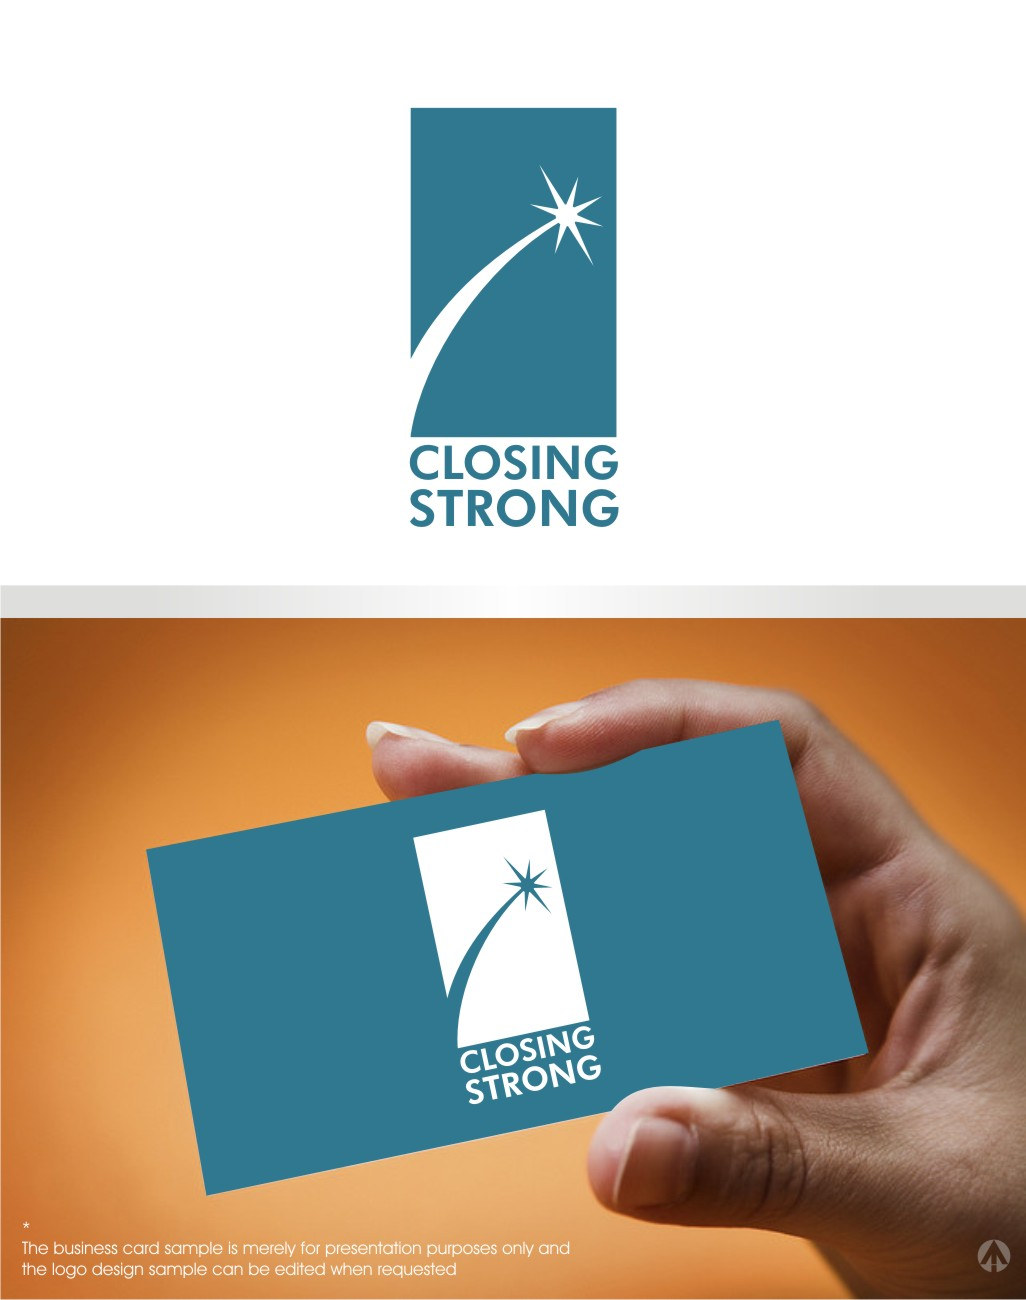 Serious modern business logo design for closing strong or closing logo design by mbaro for closing strong llc design 9499524 reheart Images